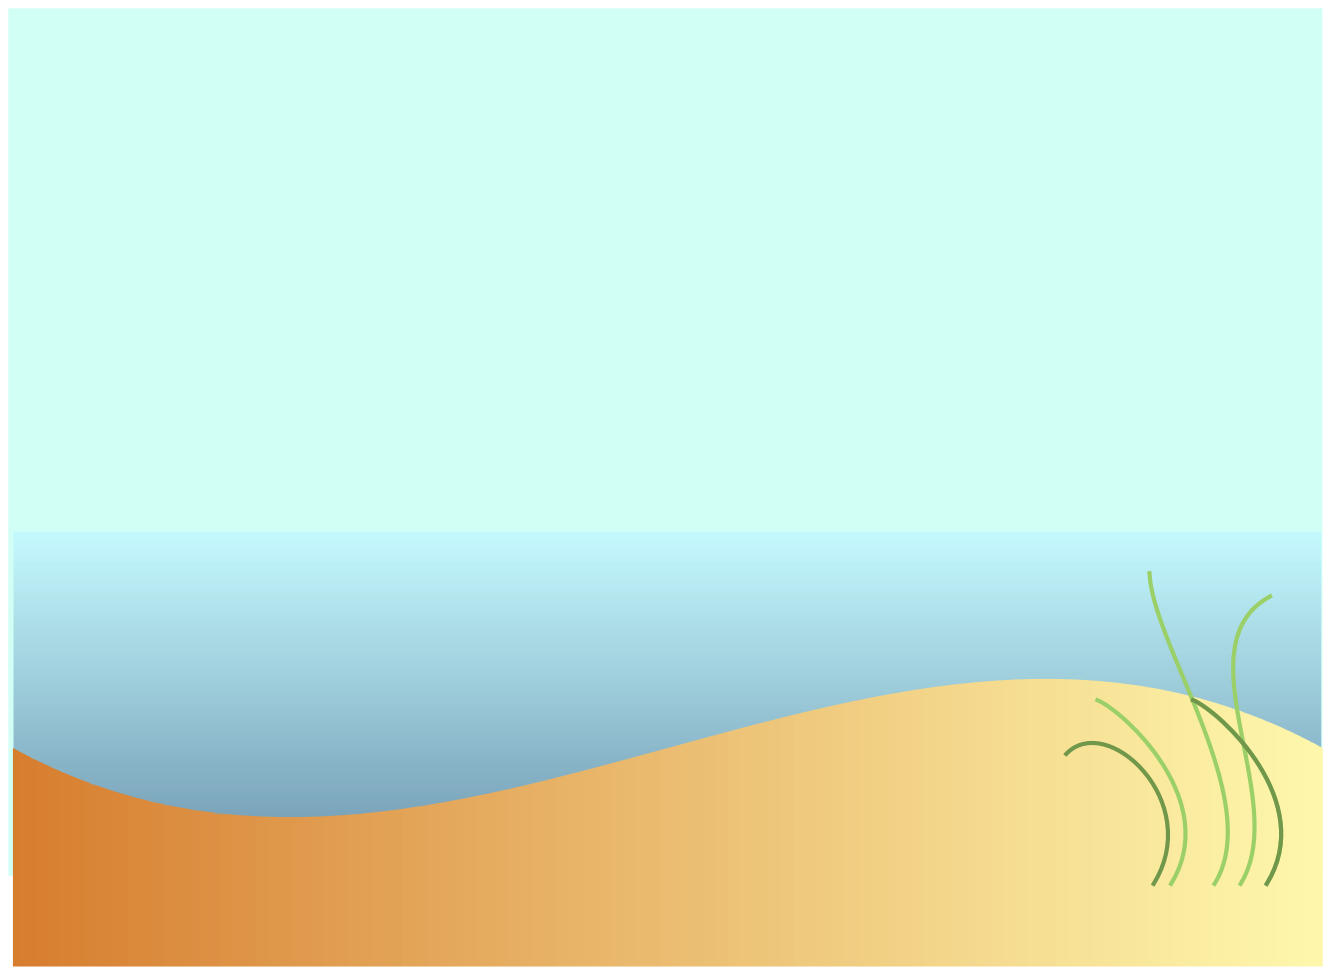 Cartoon Beach Images - Cliparts.co